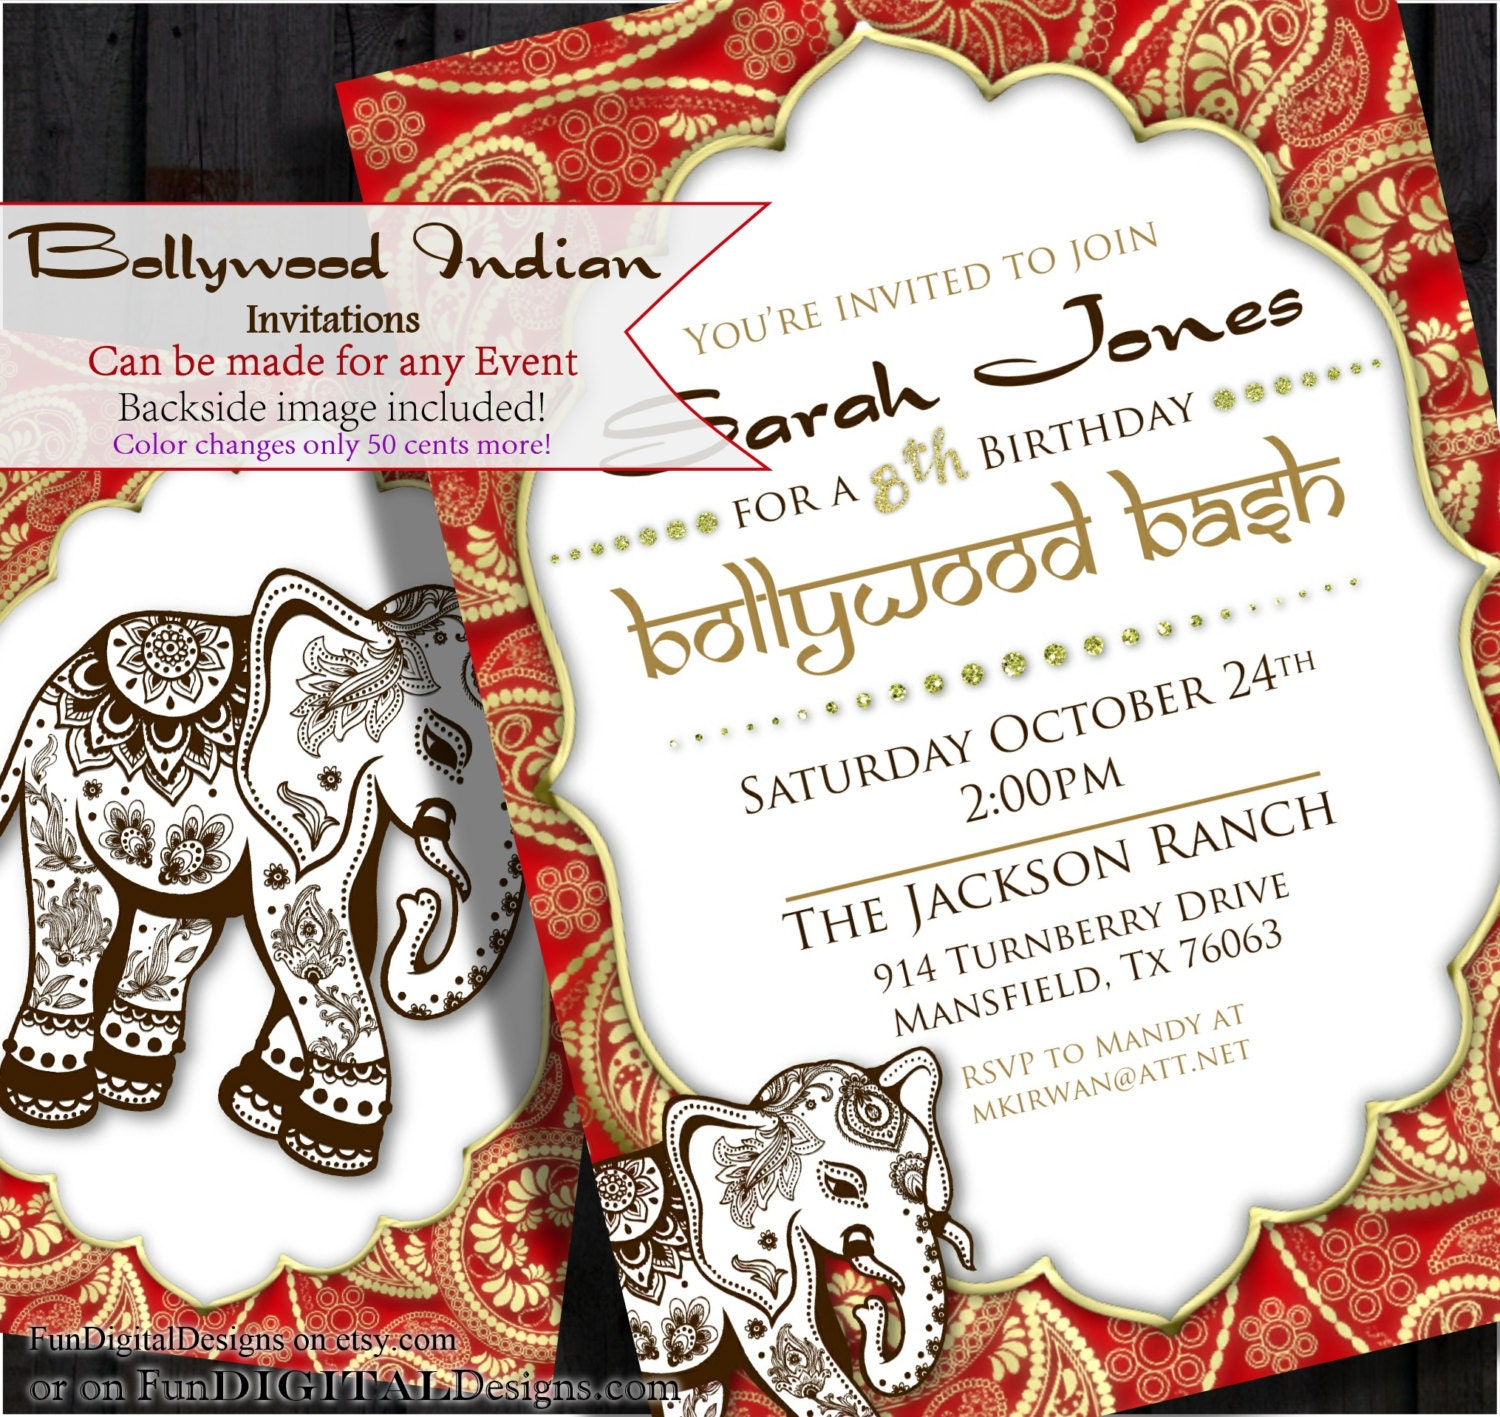 Luxury Indian Party Invitations Photos - Invitation Card Ideas ...